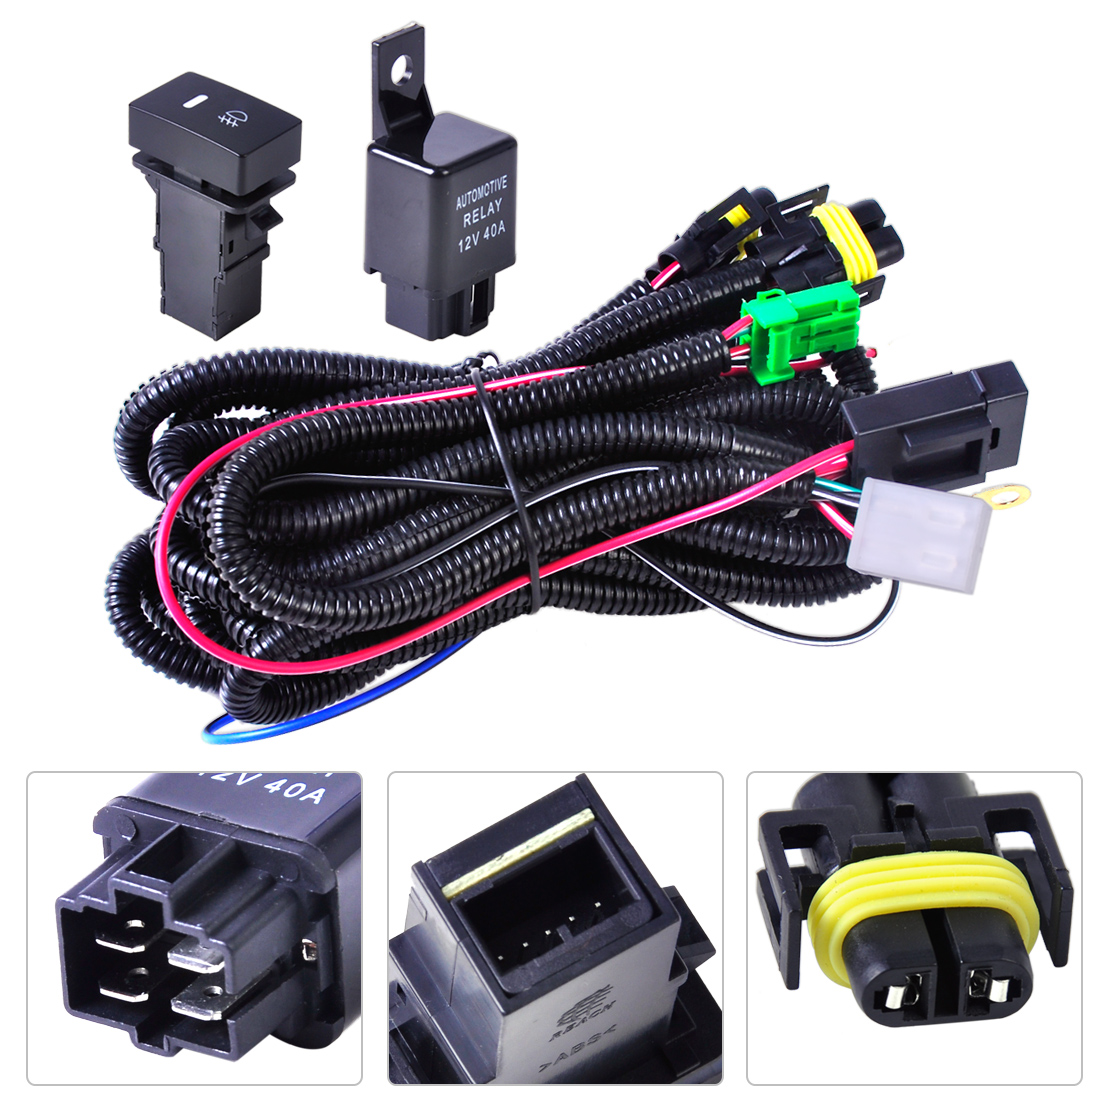 1 wiring harness sockets switch for h11 fog light lamp ford focus 2001 mustang fog light wiring harness at bayanpartner.co